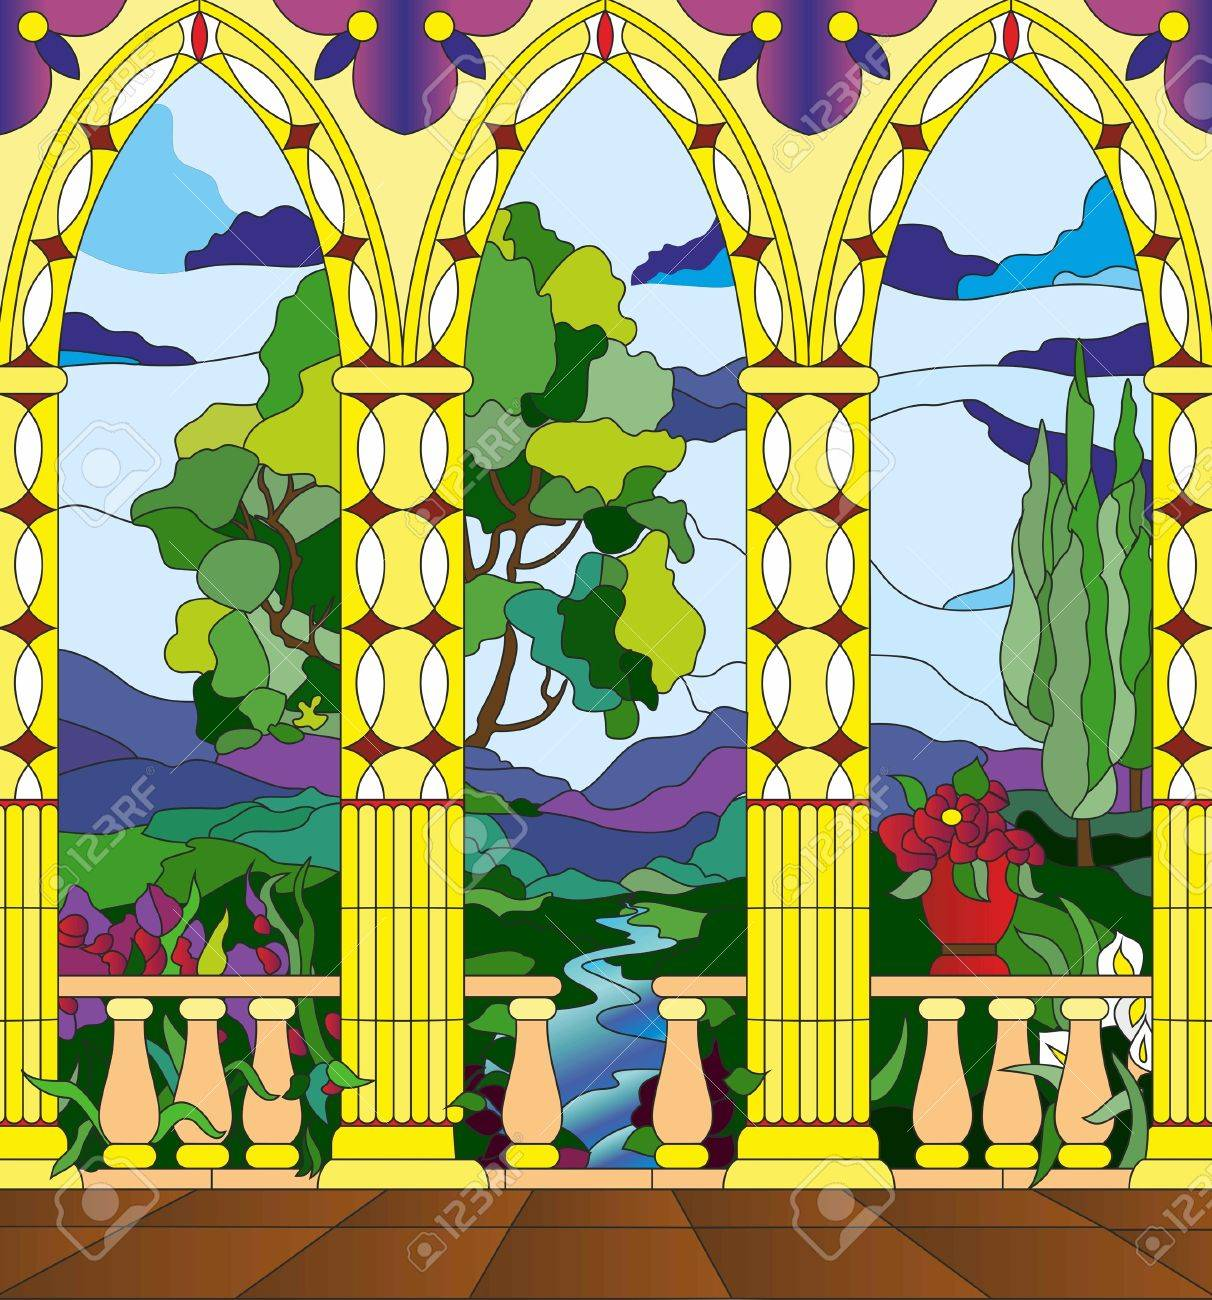 stained glass window - the view from the balcony of the castle across the valley Stock Vector - 14225936